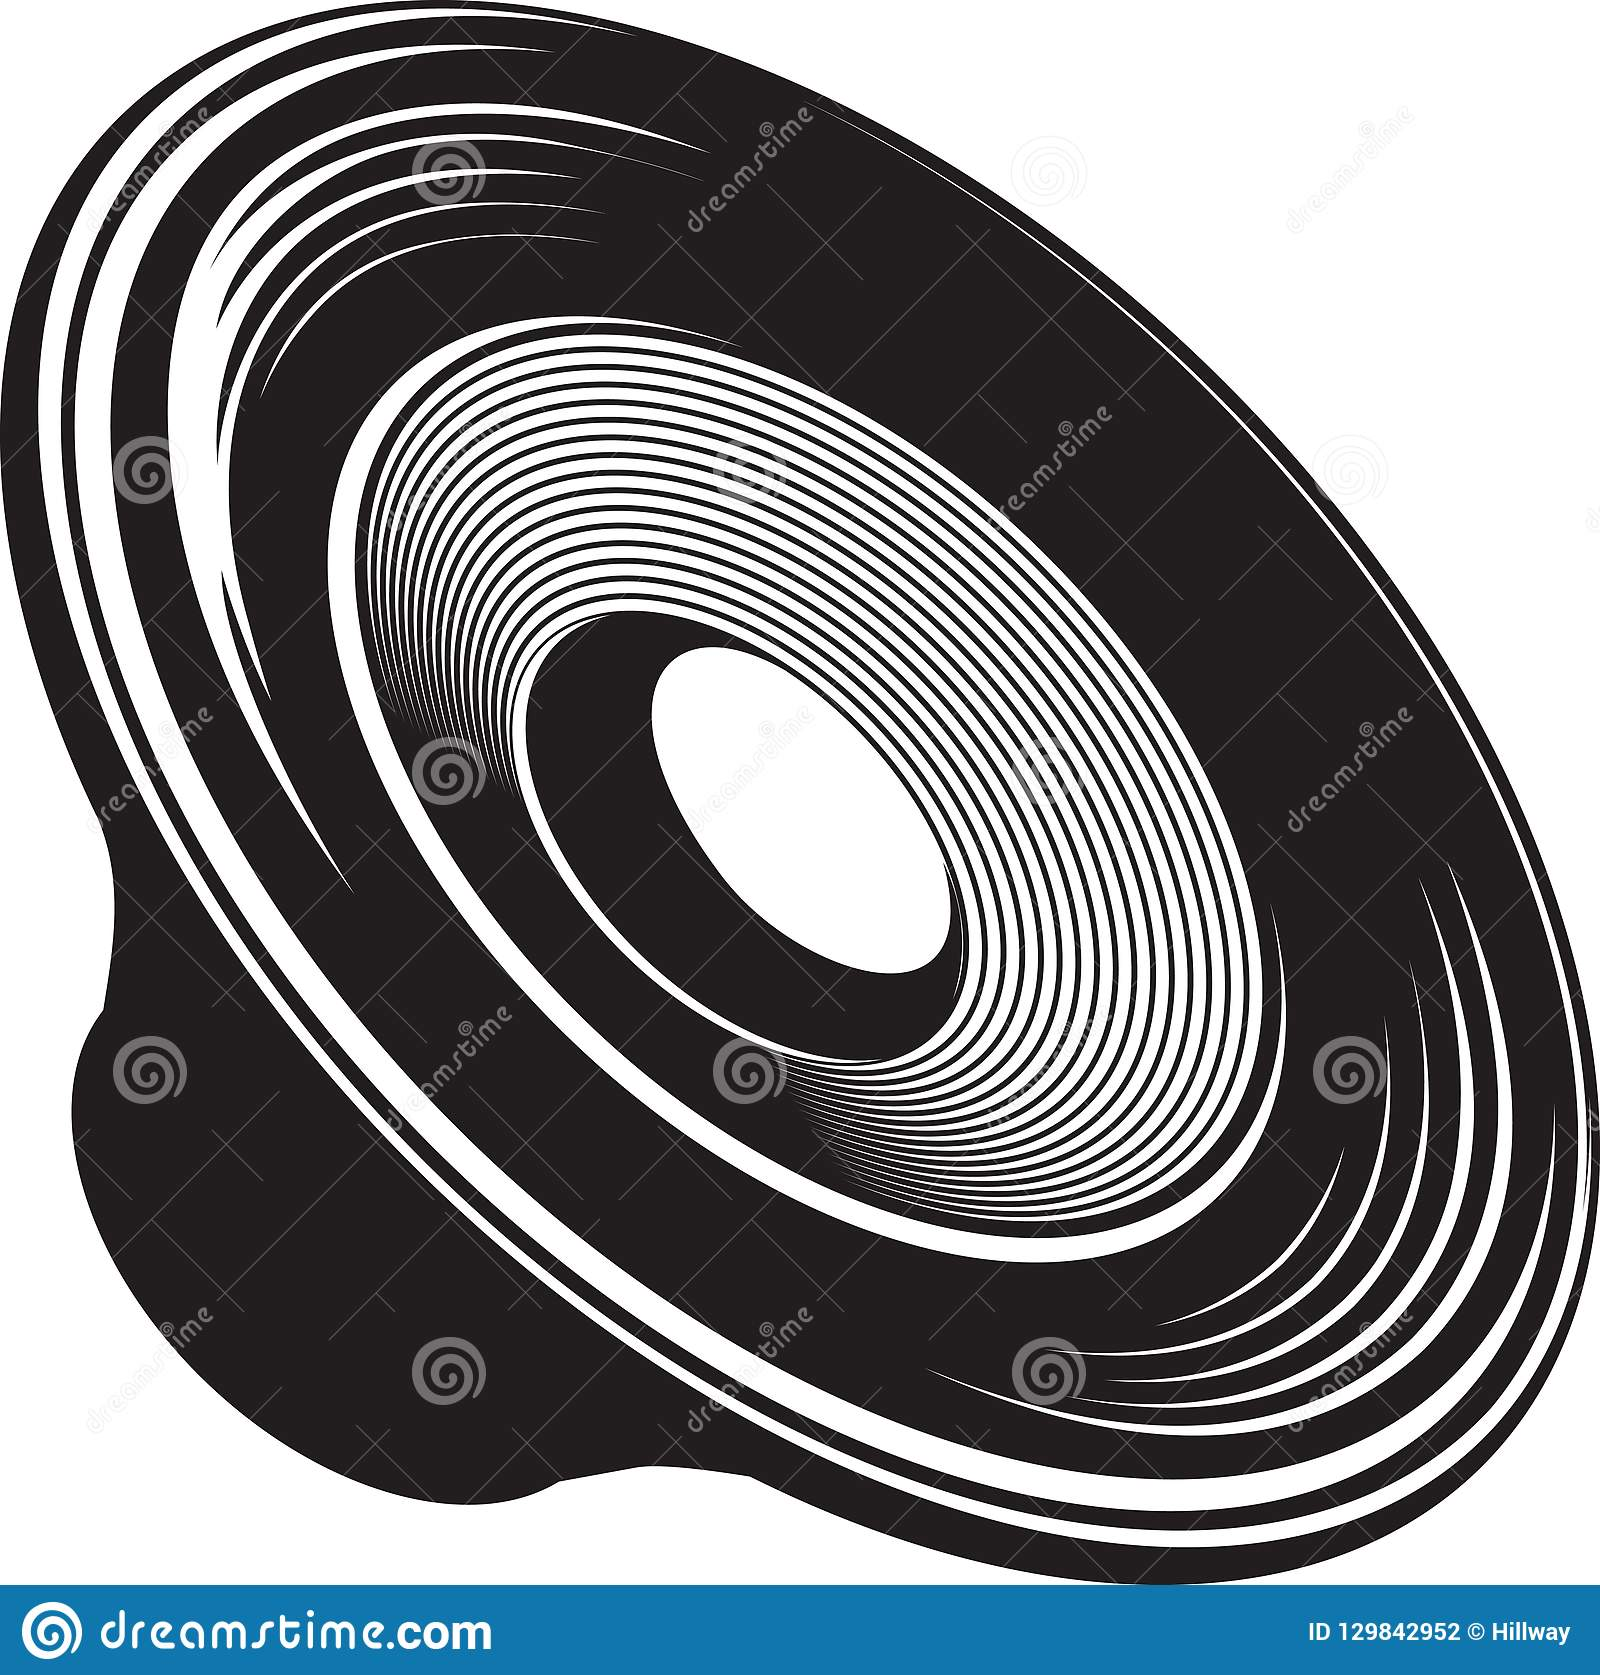 Black and white isolated illustration of speaker acoustic device